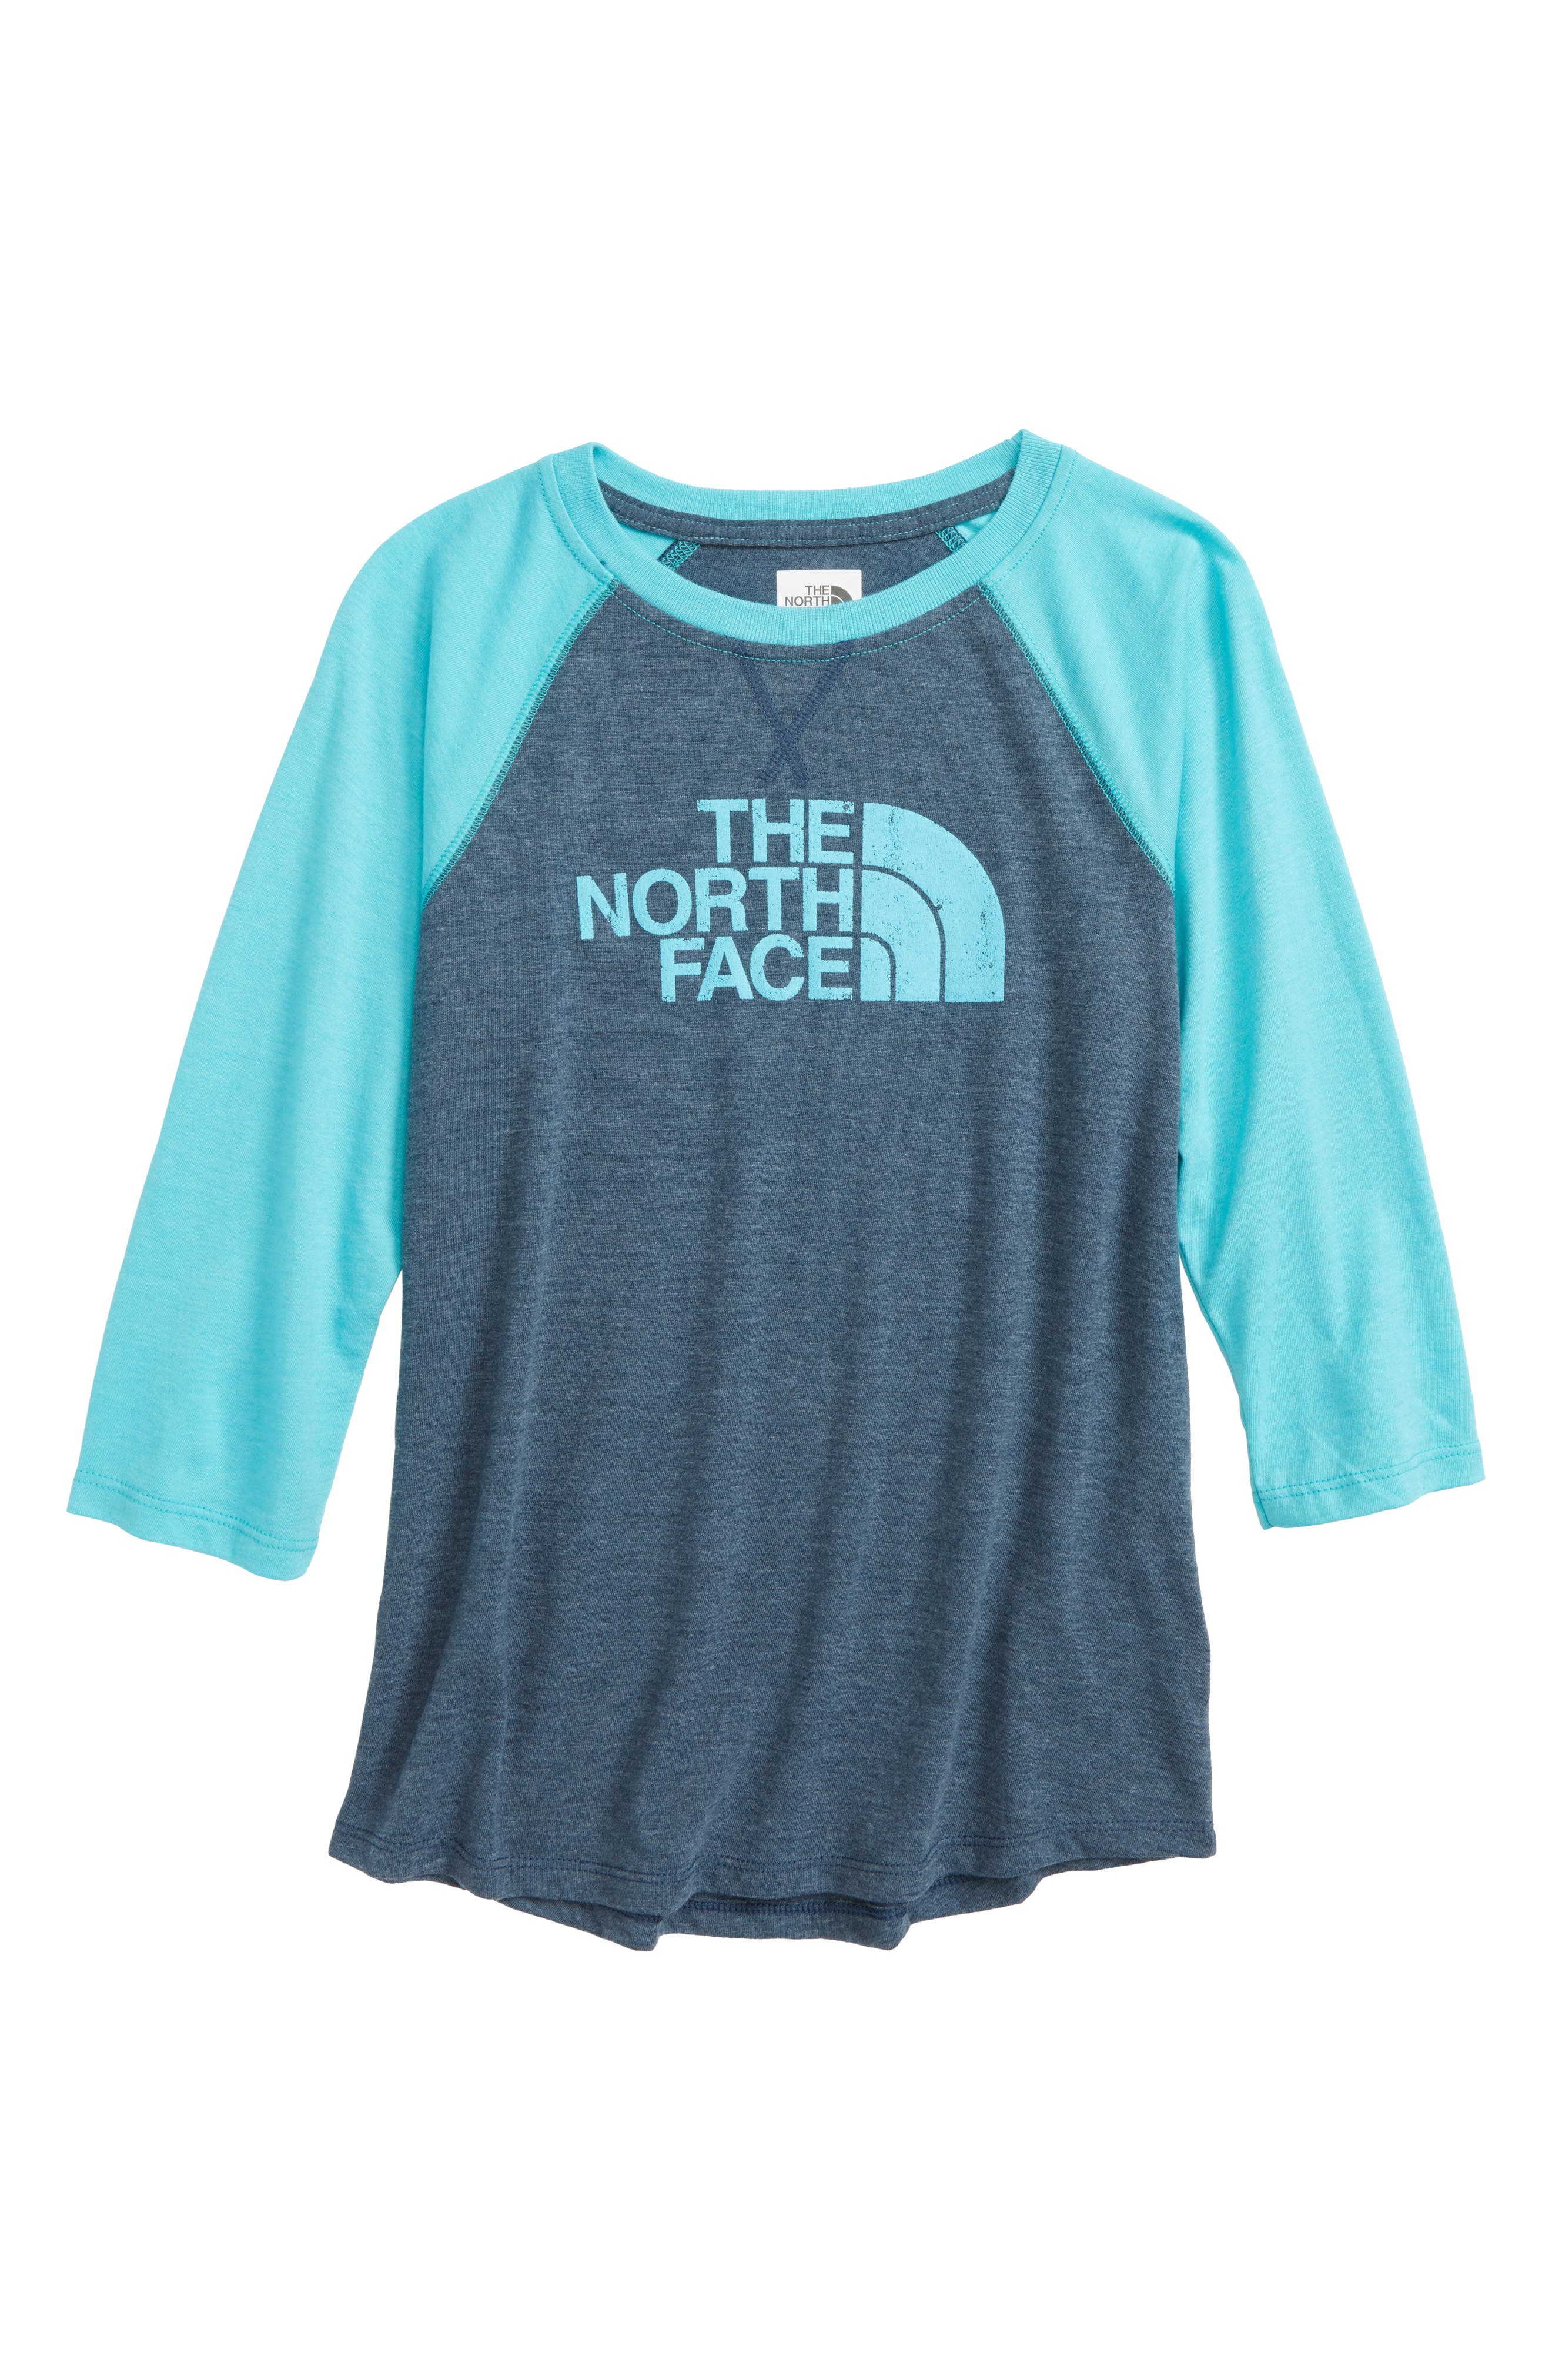 Three-Quarter Sleeve Tee,                             Main thumbnail 1, color,                             Blue Wing Teal Heather